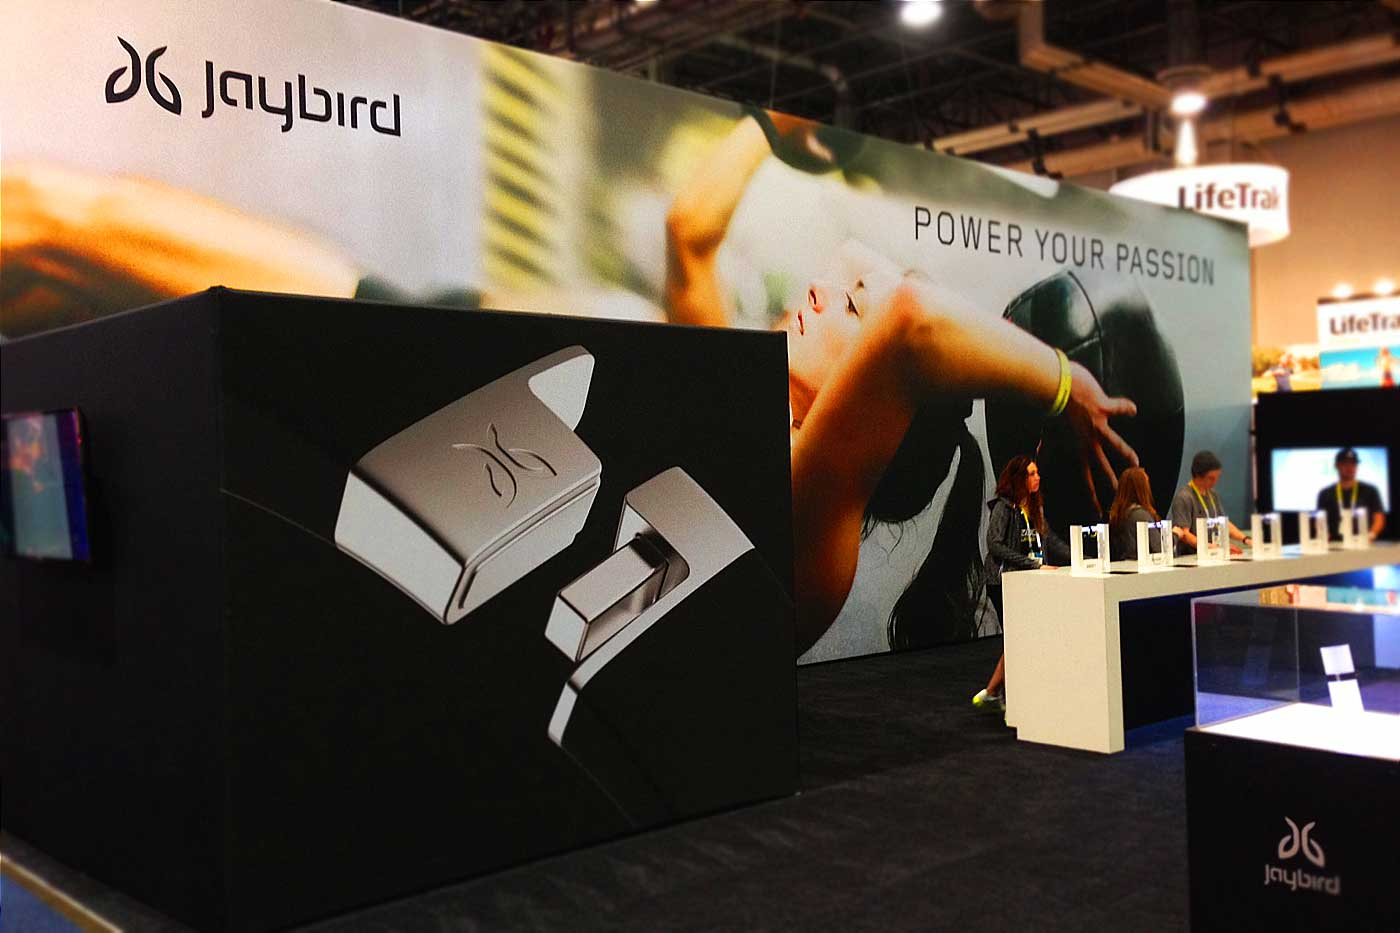 jaybird headsets trade show booth design - bxc designed the jaybird logo